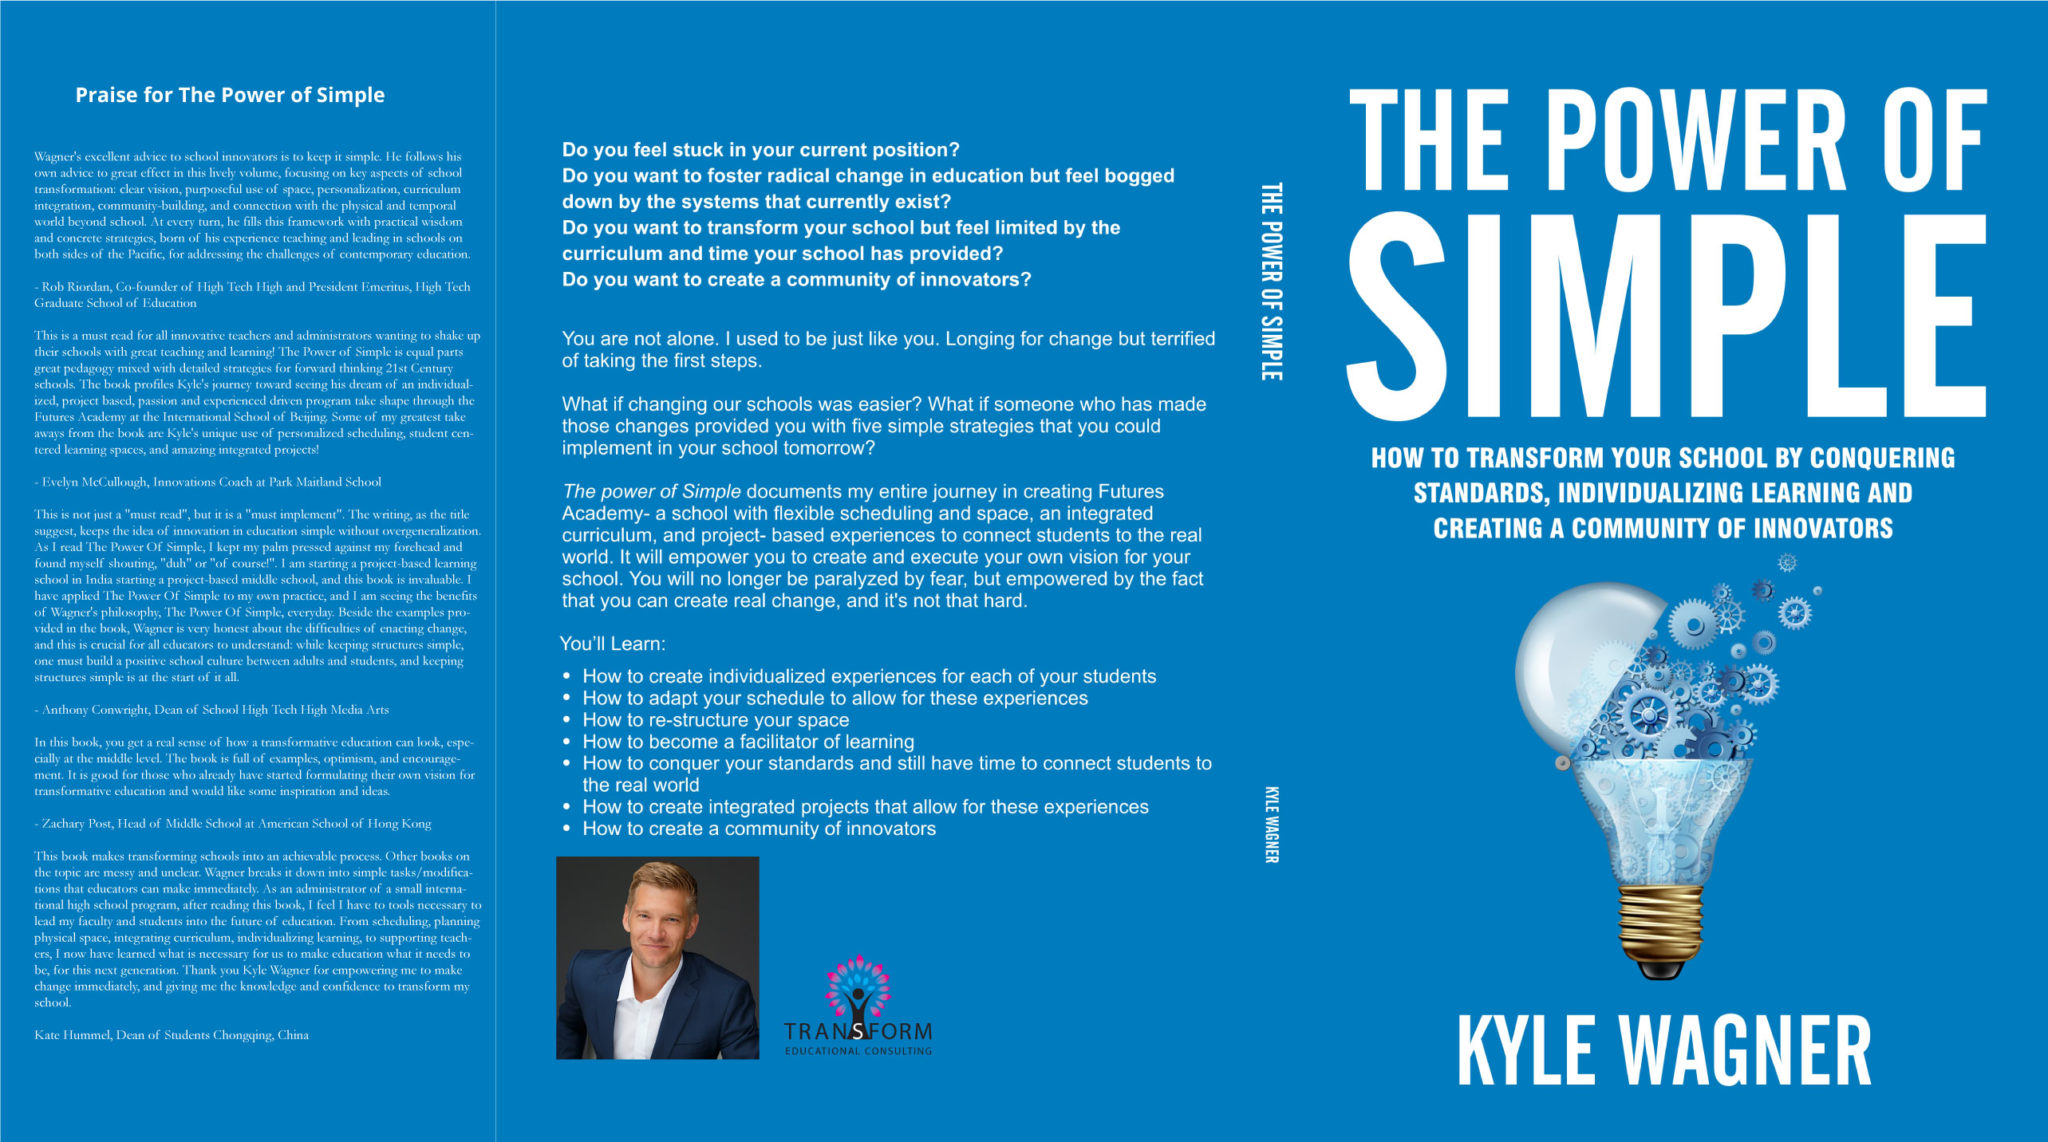 kyle wagner the power of simple book